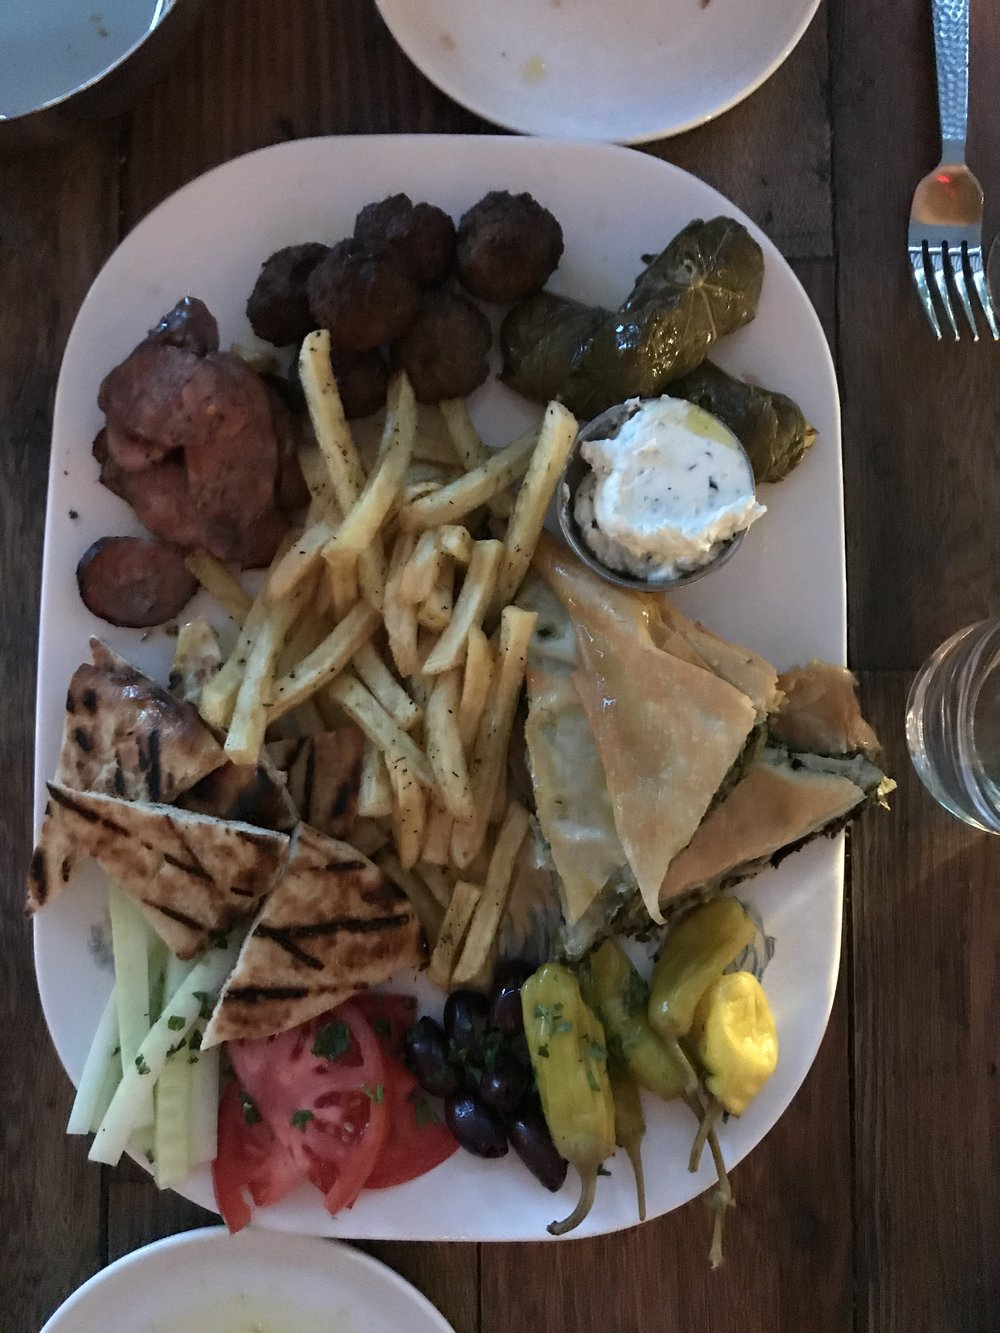 We were actually full after the Meze platter.